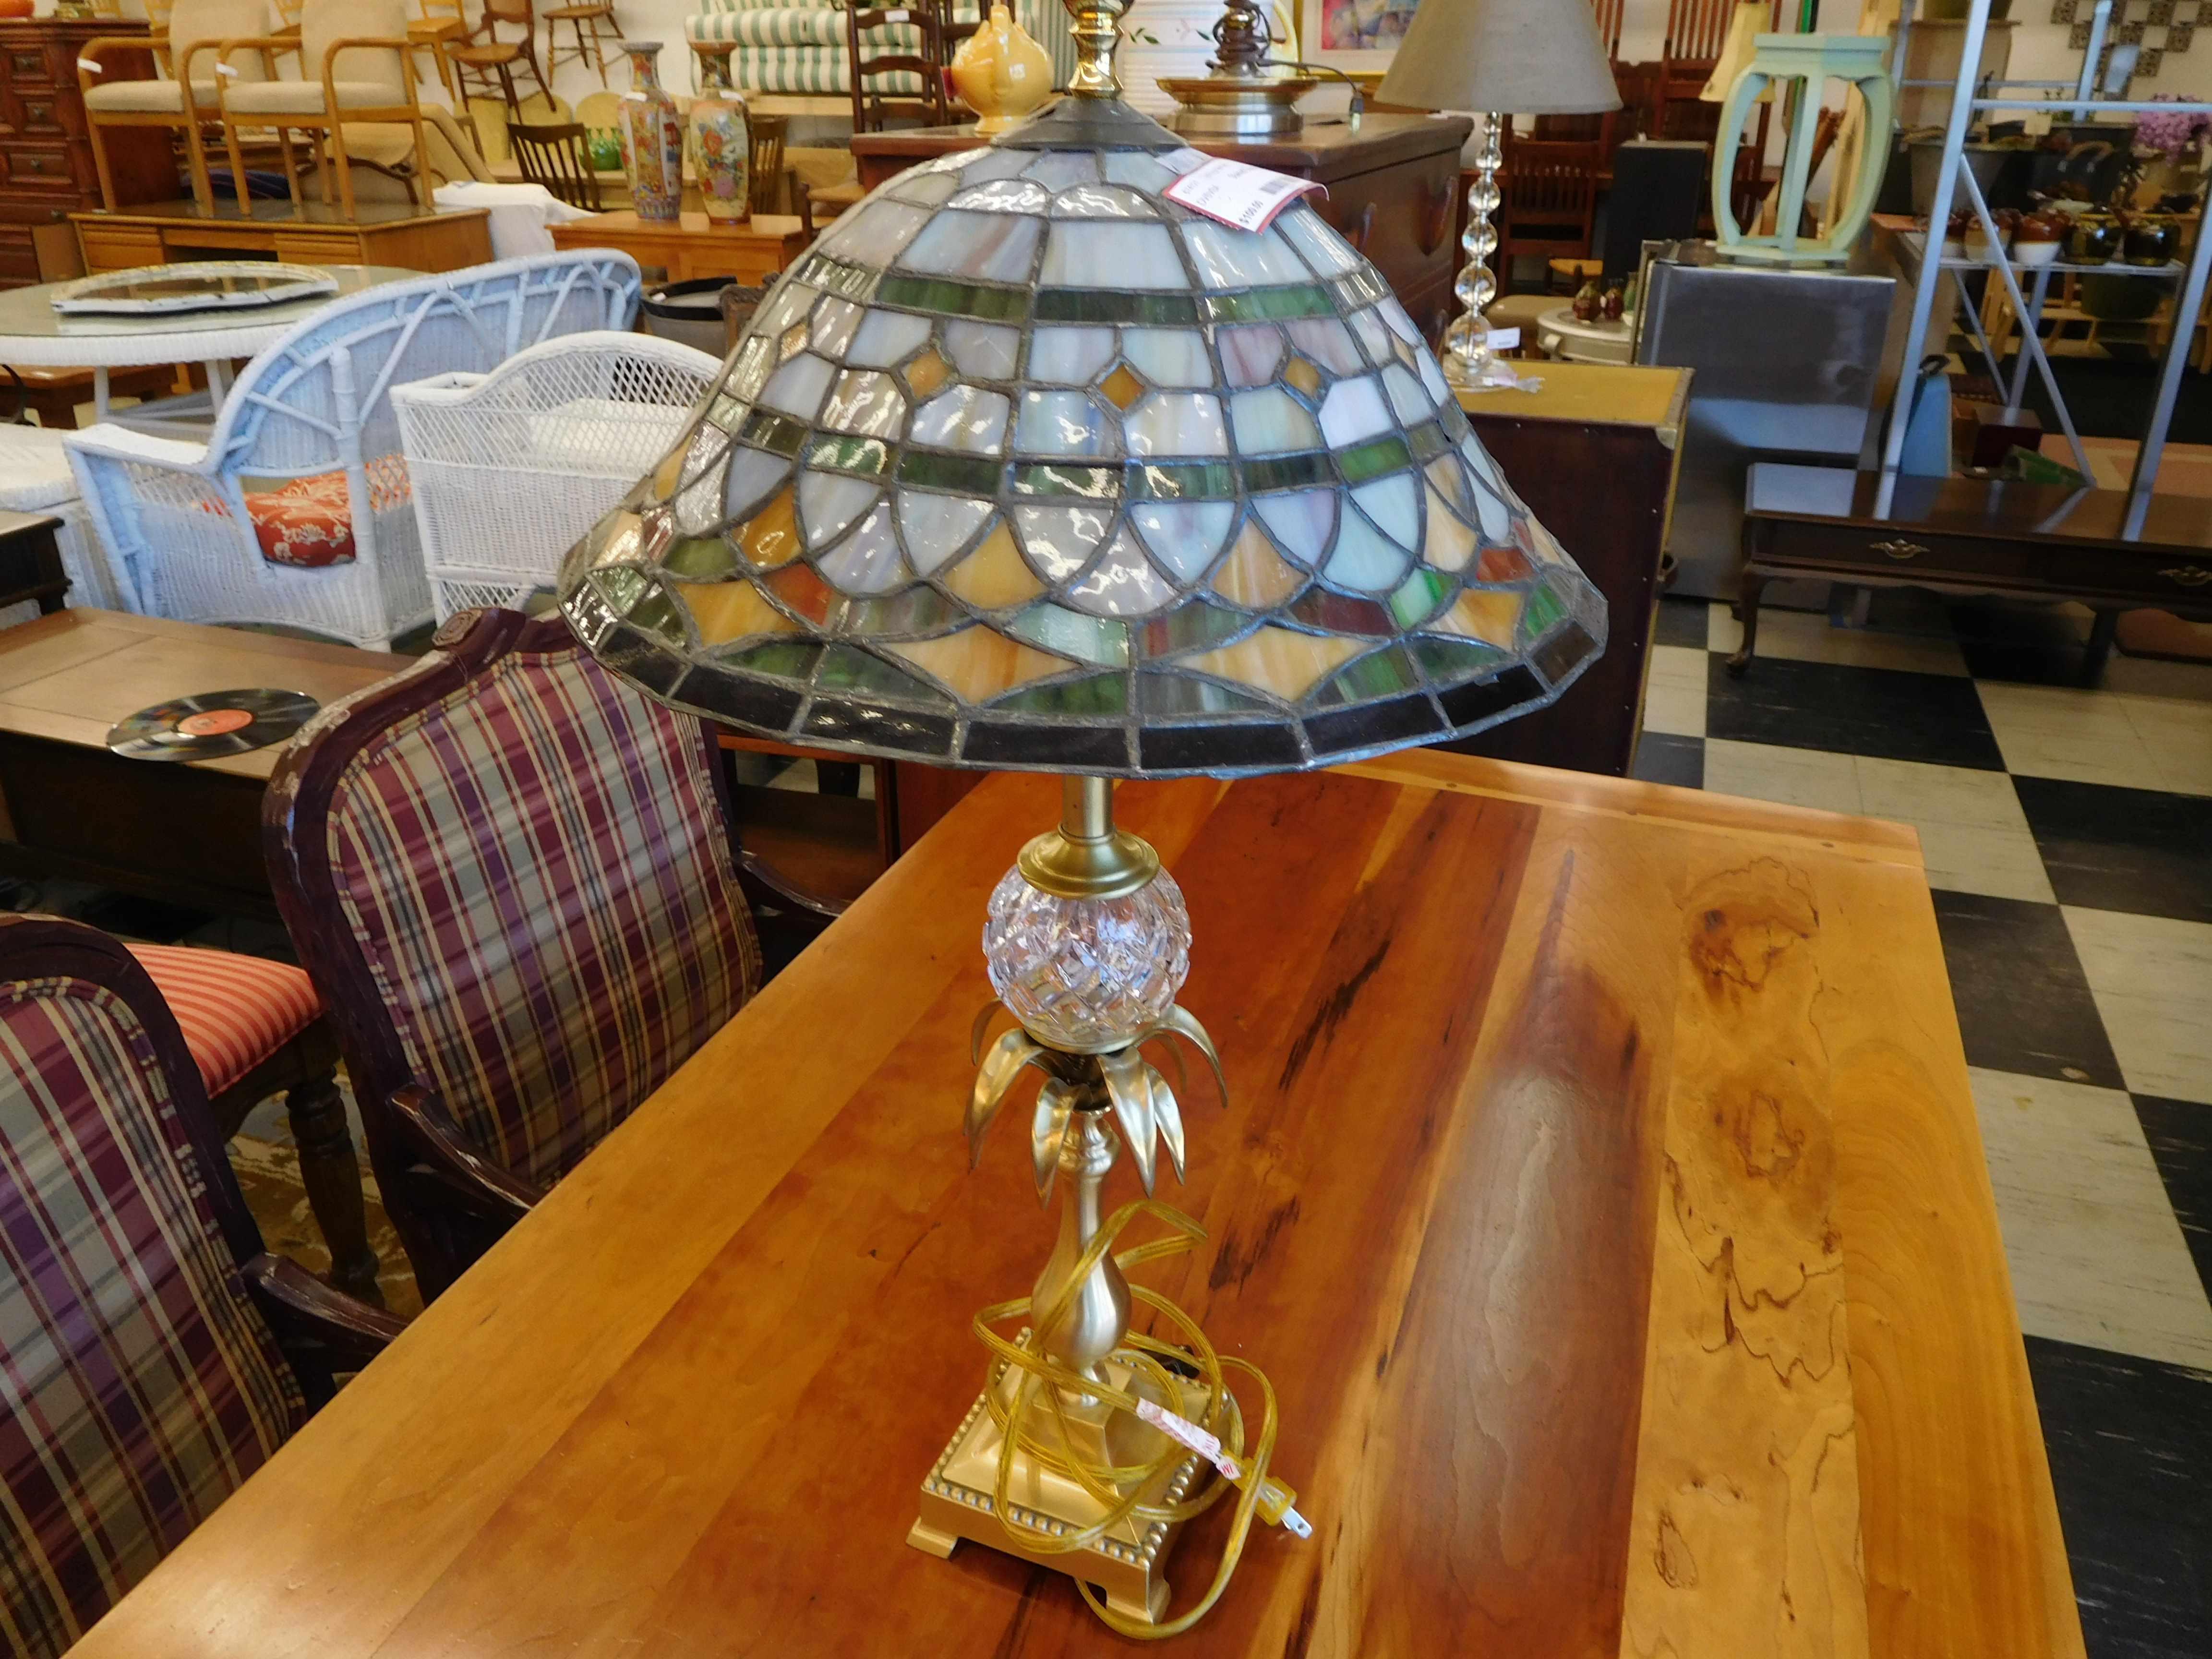 Nice Stained Glass Table Lamp - Green, Yellow and Orange Design